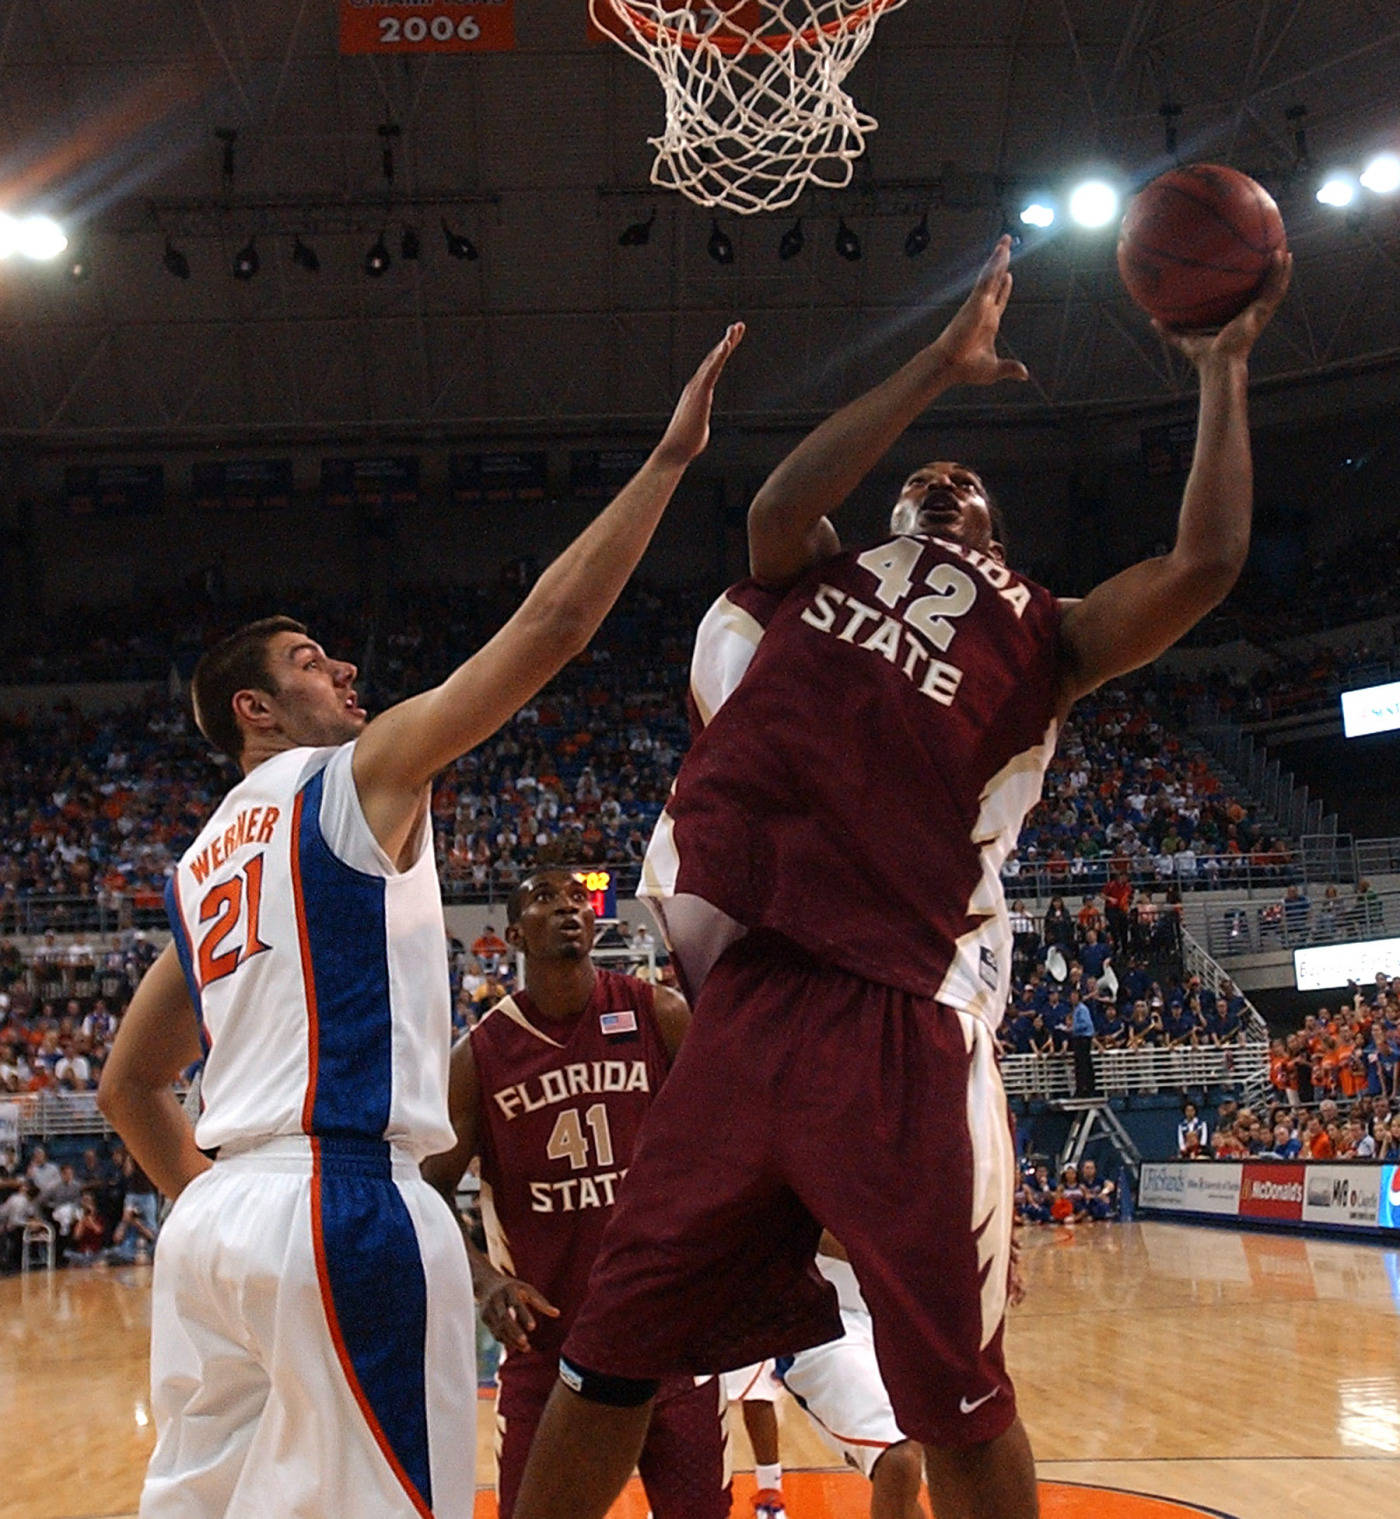 Florida State's Ryan Reid (42) goes up for a basket with Florida's Dan Werner (21) trying to block during the first half.